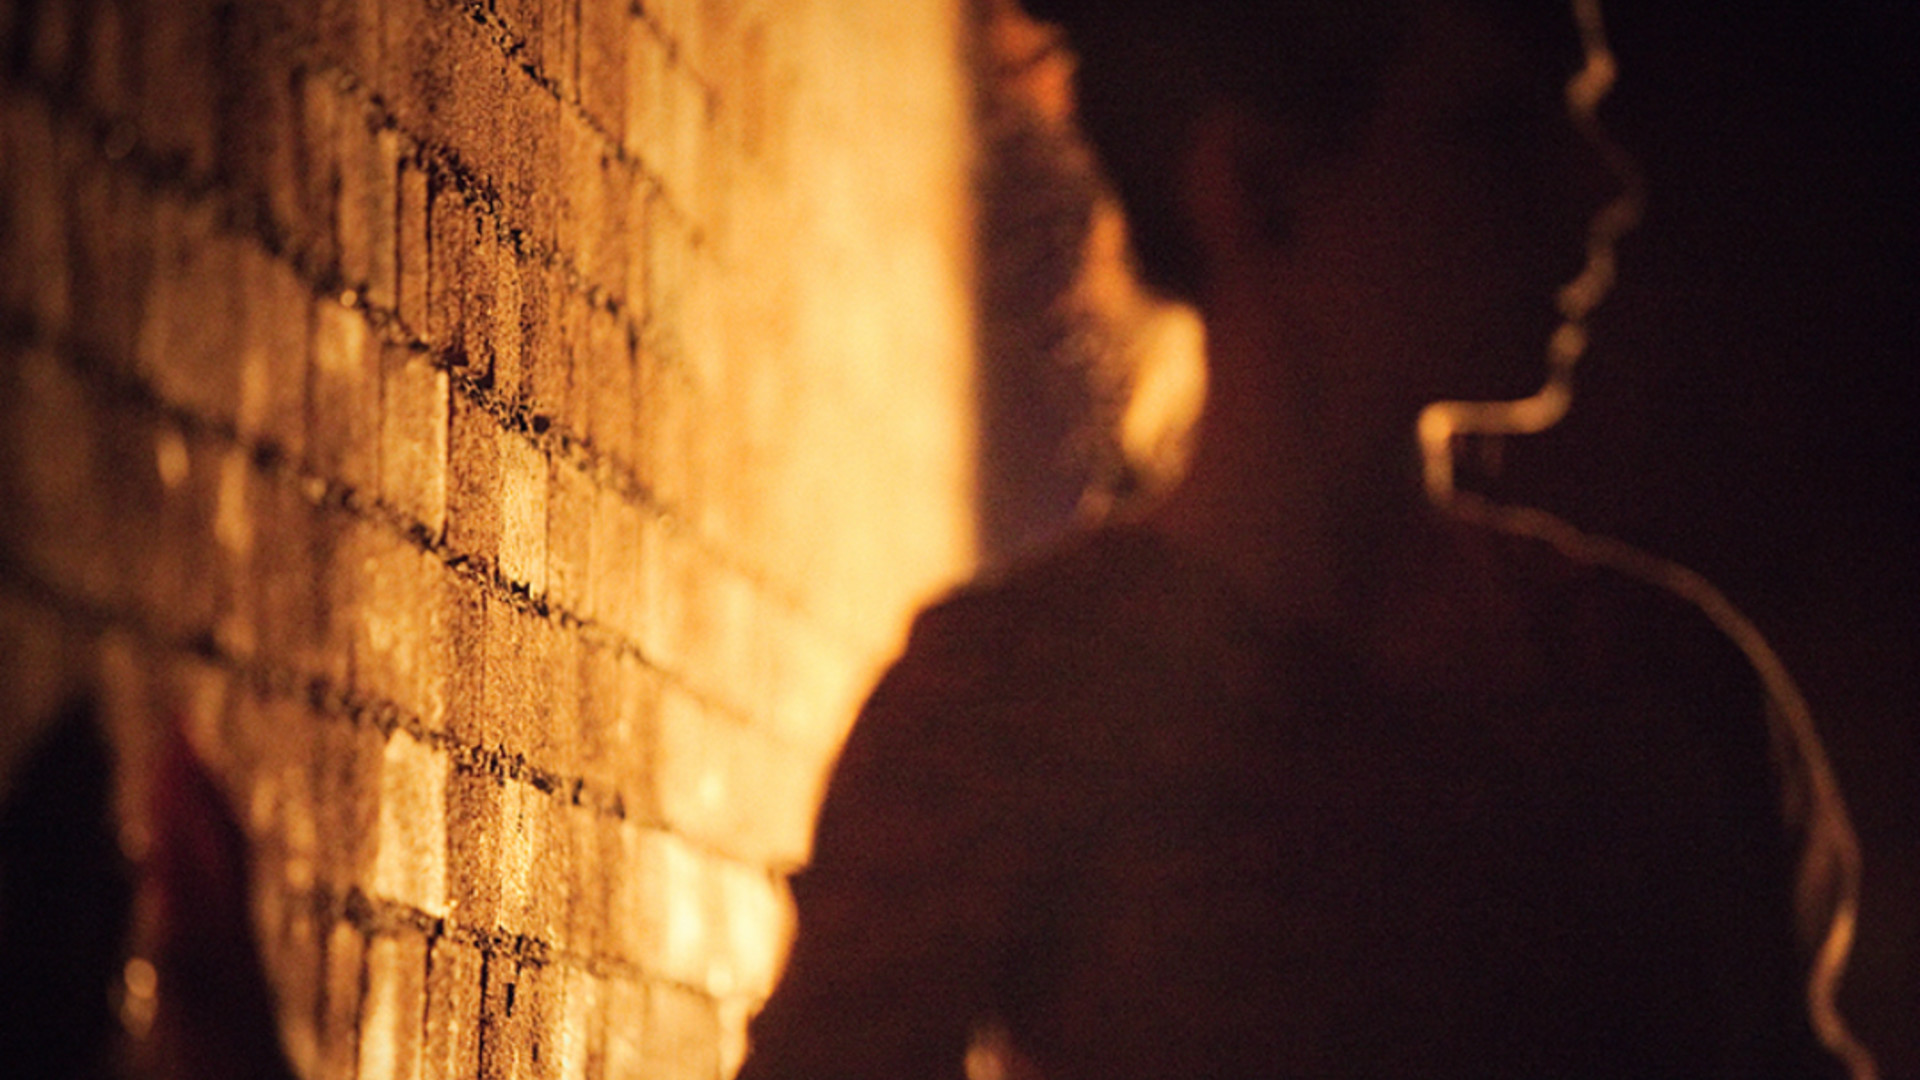 A blurred close-up of a woman facing right and touching a brick wall on the left. The bricks, lit yellow, are in focus